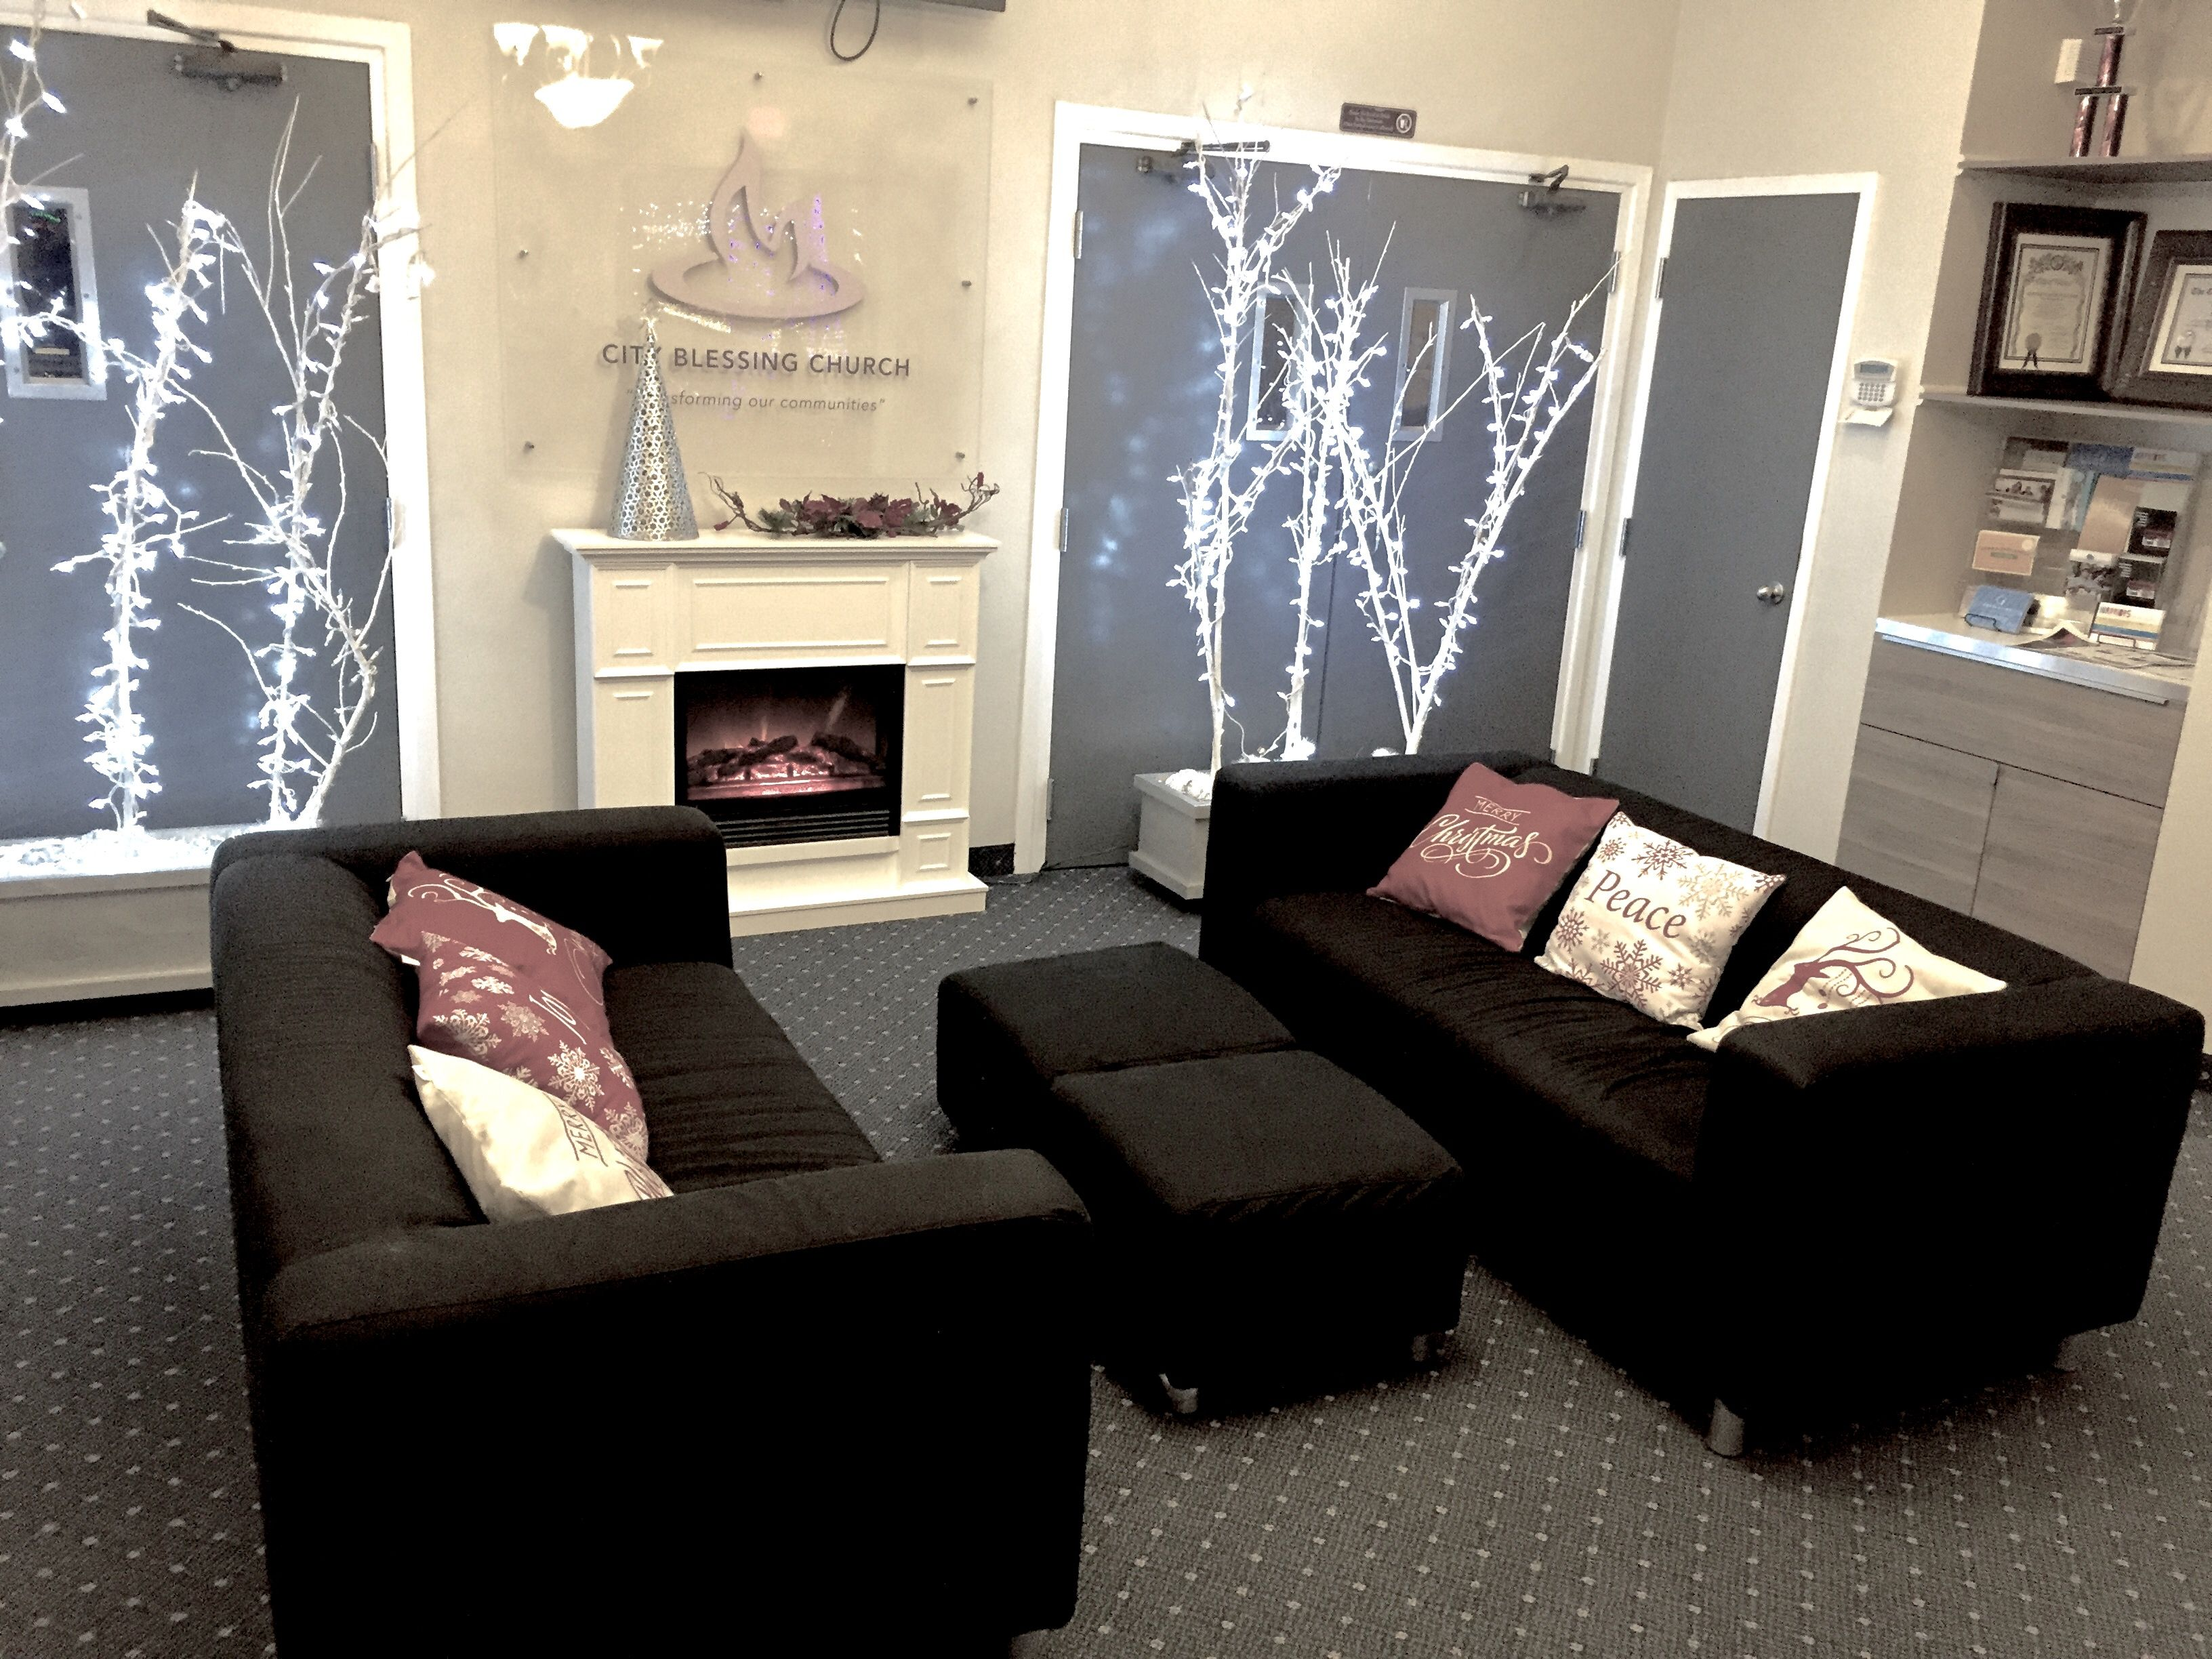 church foyer furniture. Church Foyer Transformed To A Cozy Seating With Electric Fireplace Furniture G